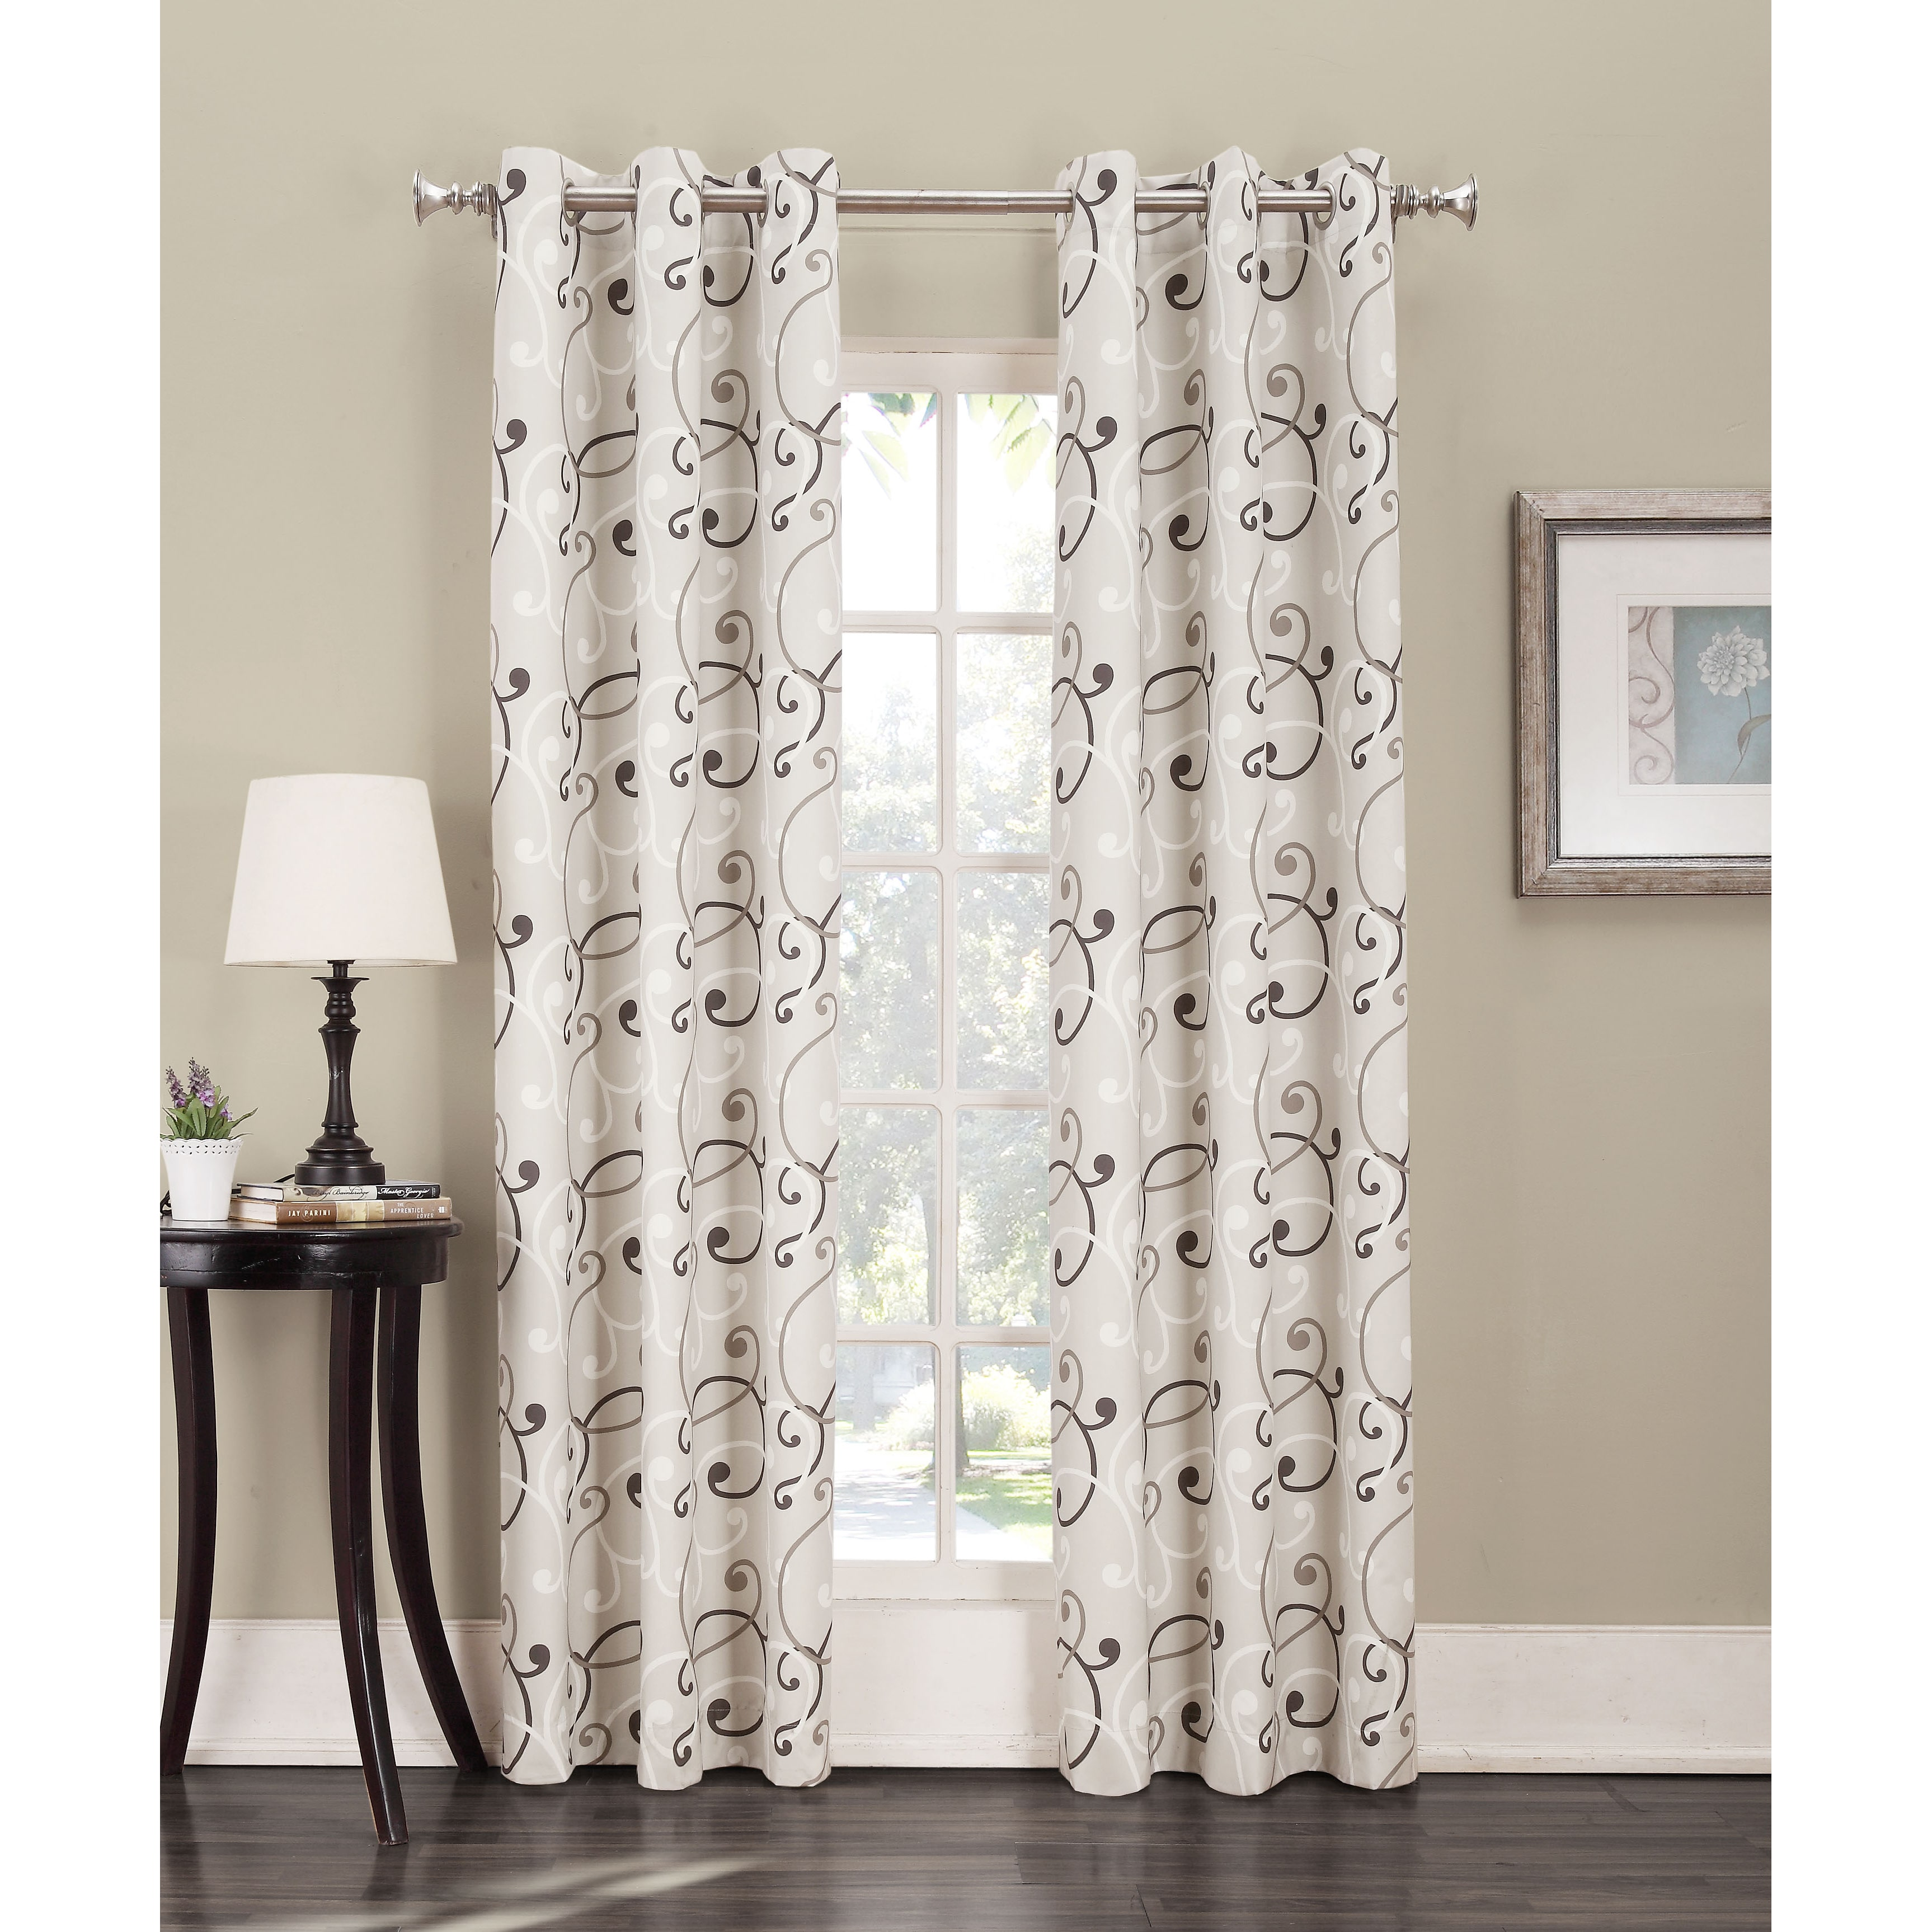 Sun Zero Belinda Scroll Print Thermal Insulated Energy Efficient Grommet Curtain Panel by S. Lichtenberg & Co.